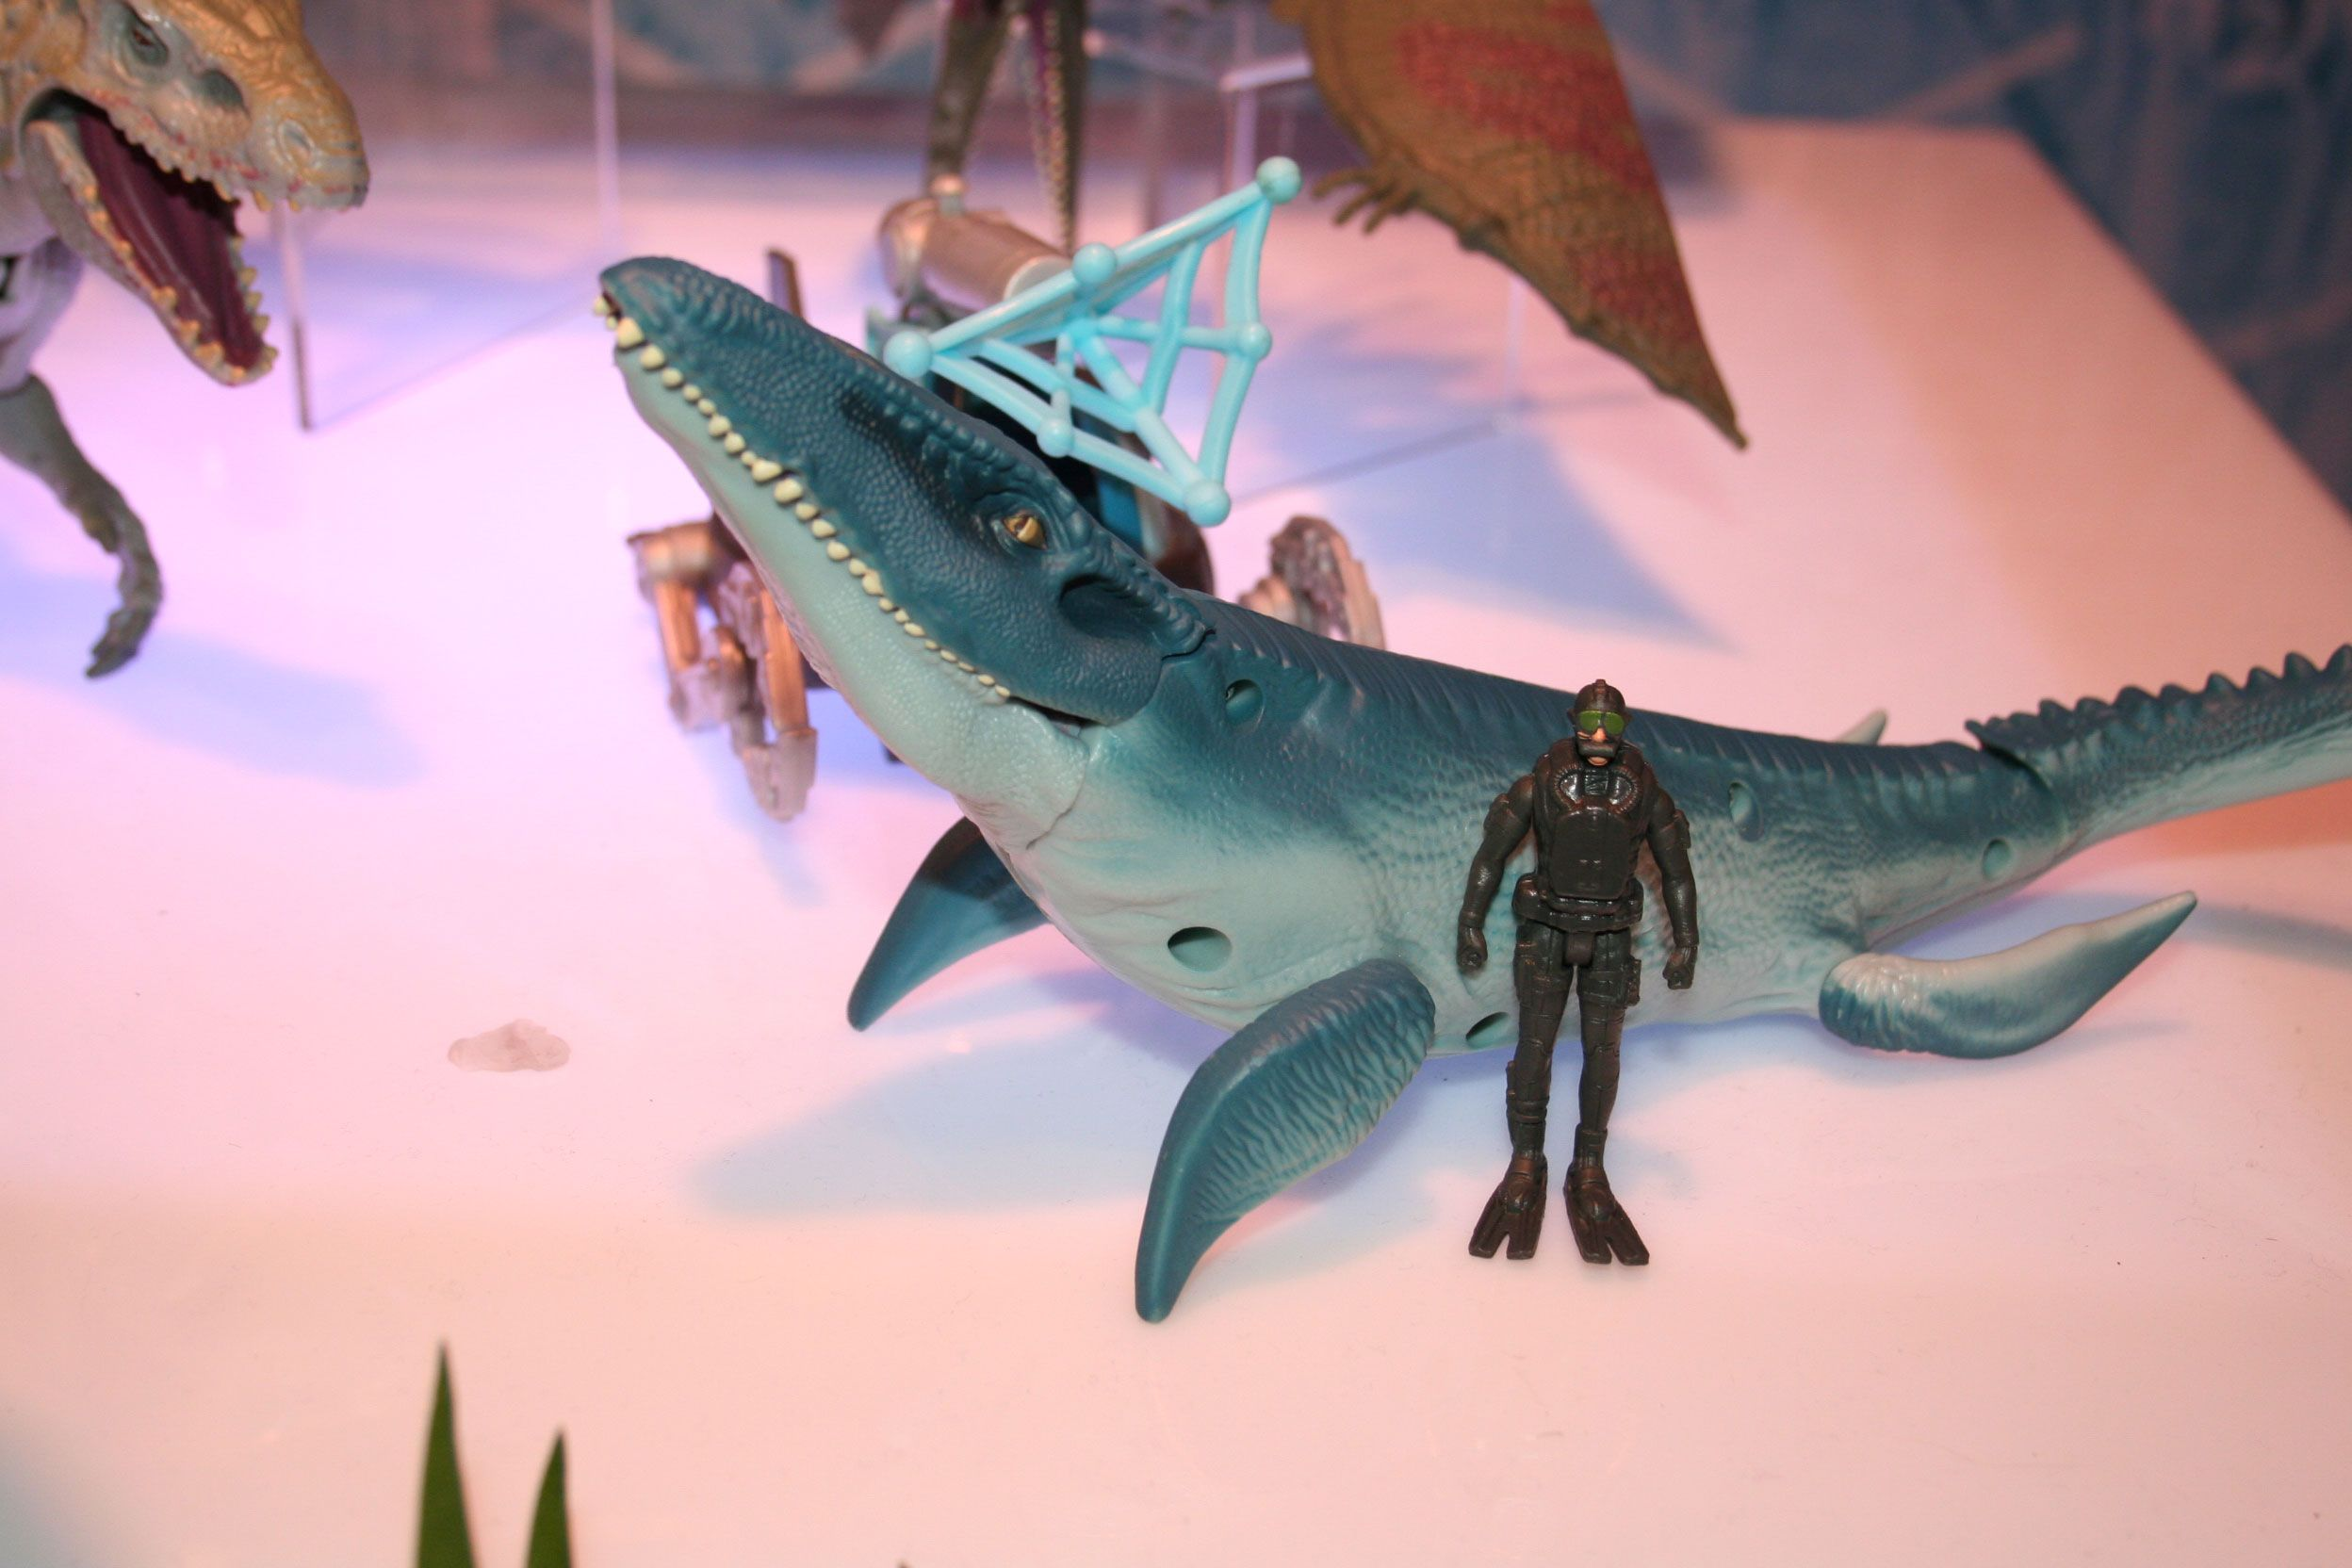 Jurassic World Toy Images from Hasbro at Toy Fair 2015